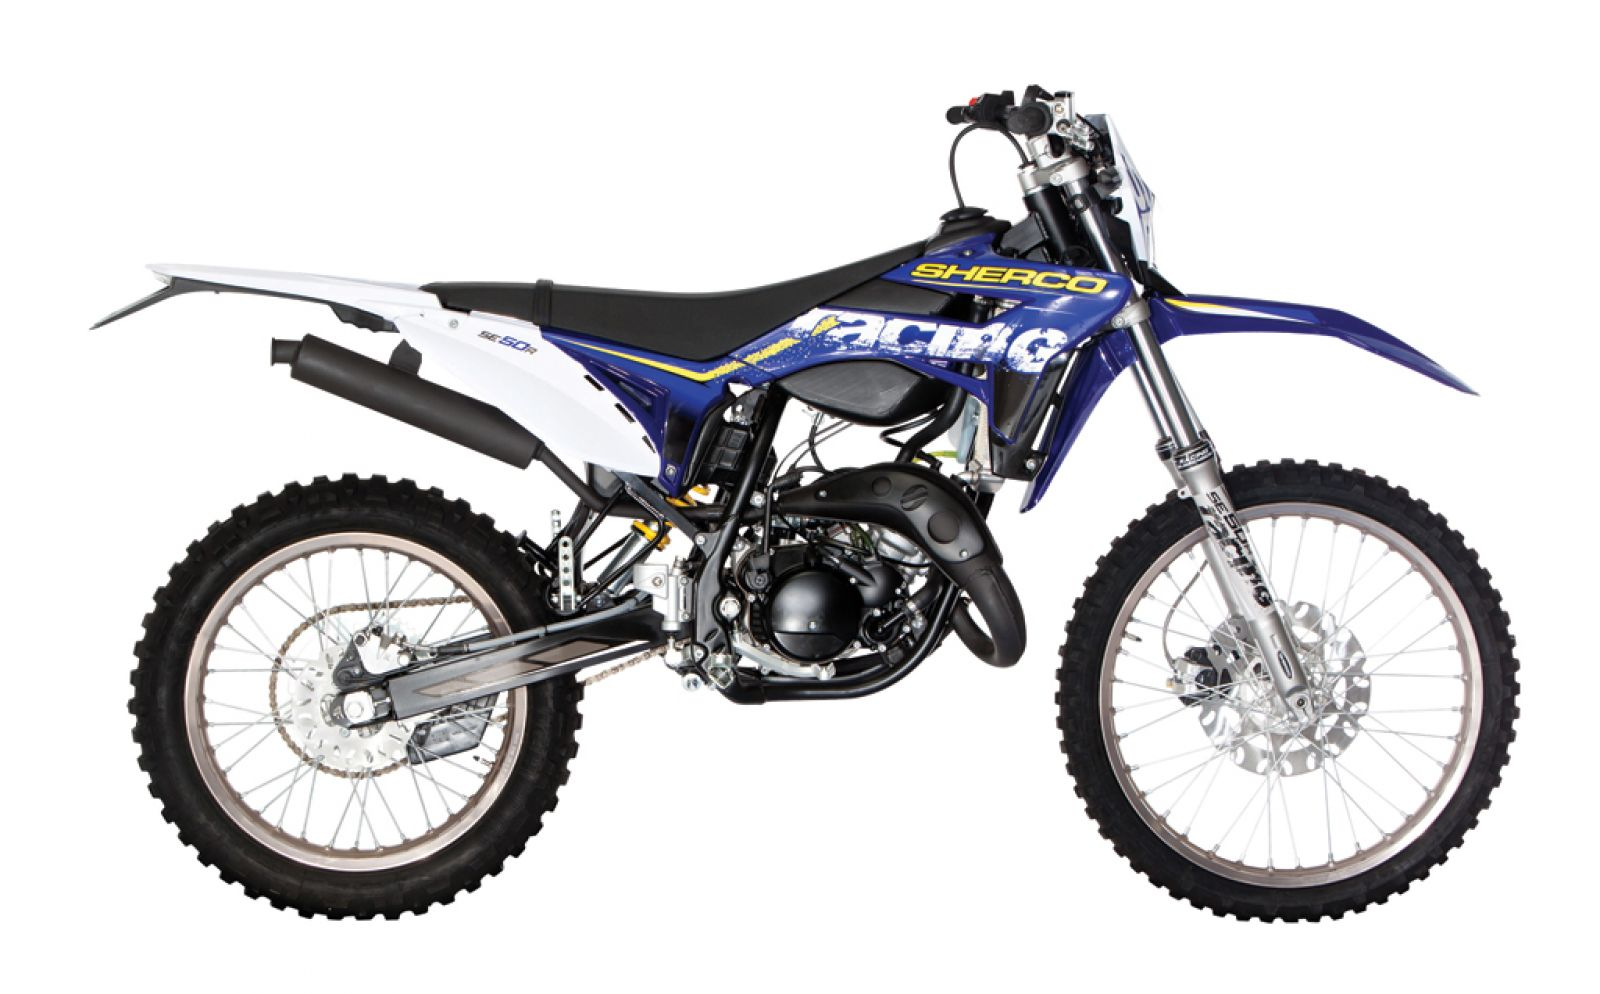 Sherco 125cc Enduro Shark Replica 2007 images #124661